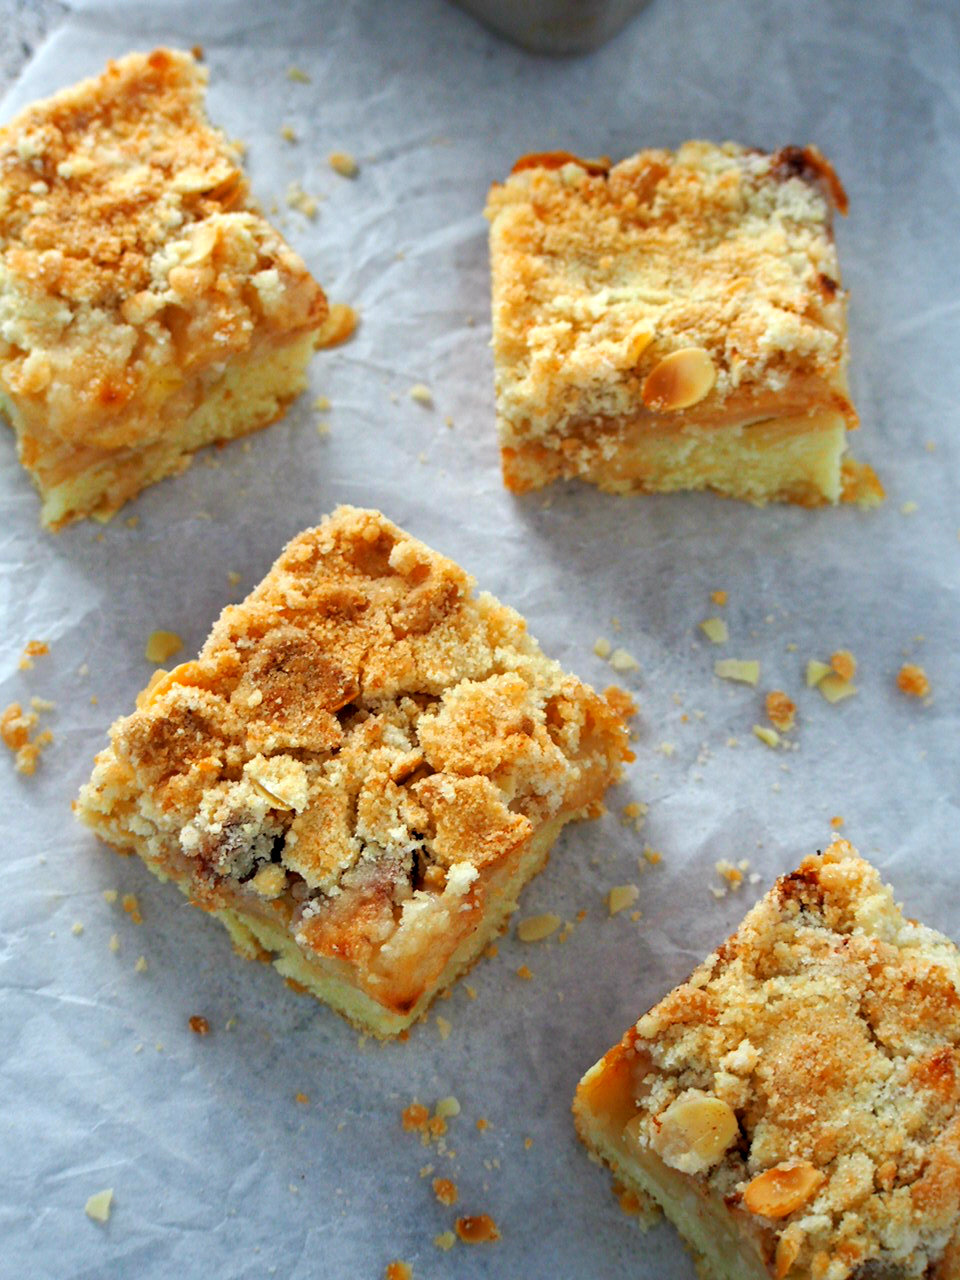 Slices of apple streusel coffee cake laying on a parchment paper, top view.